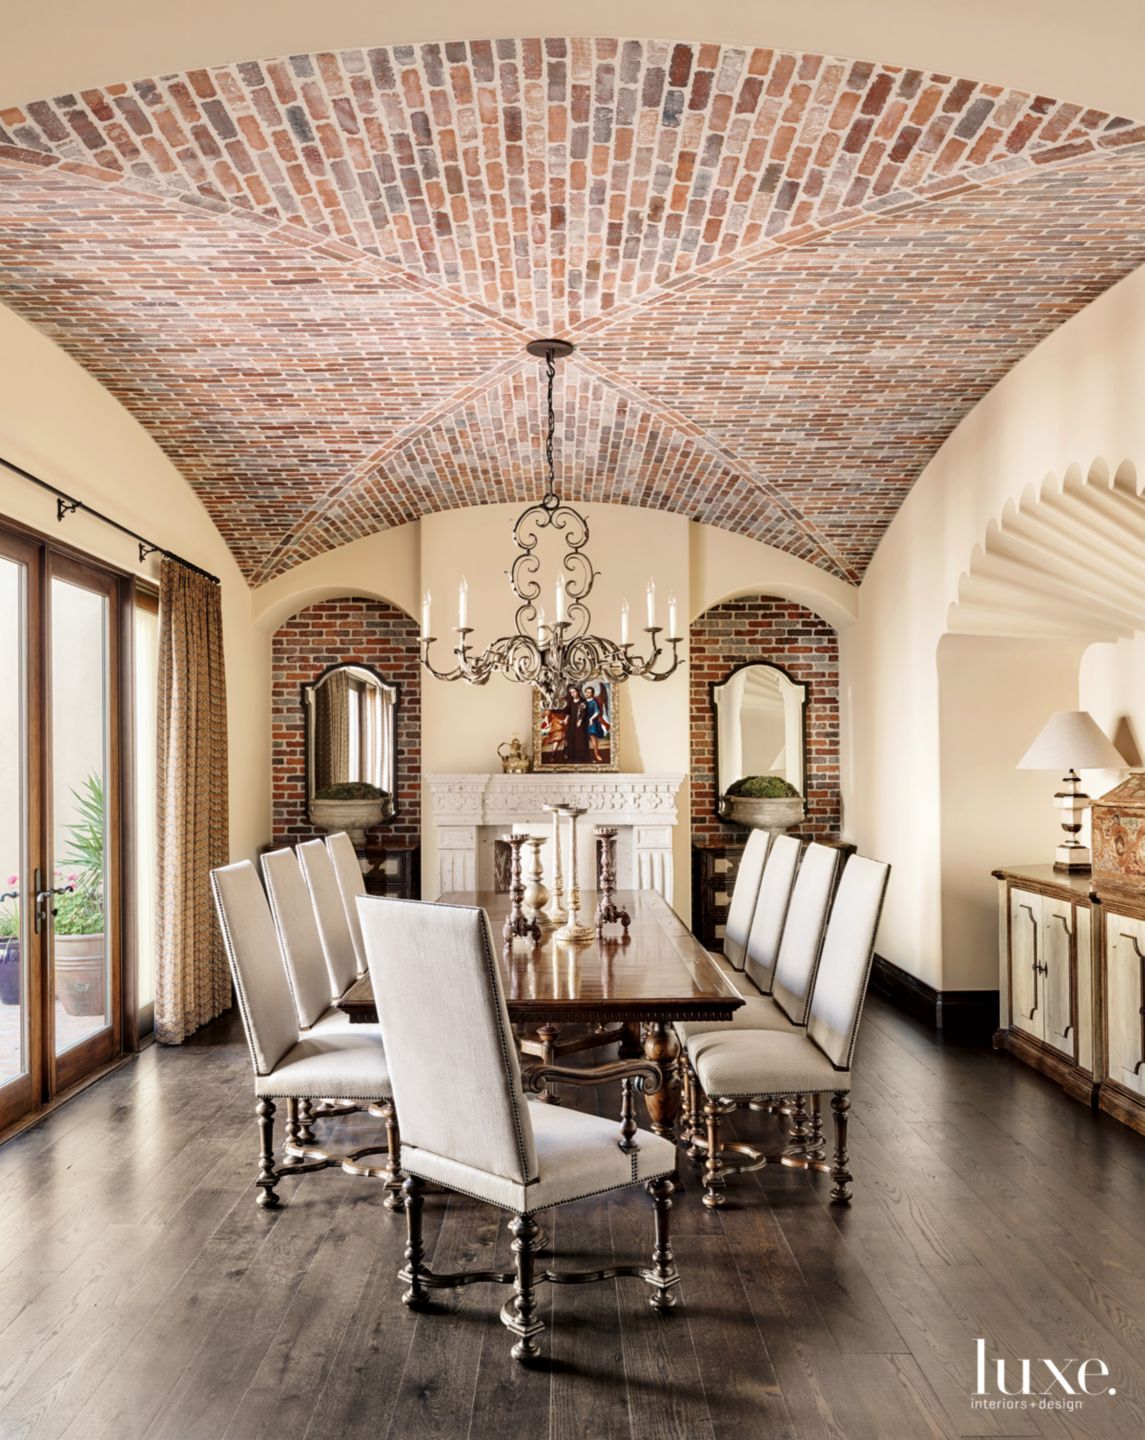 Spanish Mission-Inspired Traditional Cream Dining Room with Brick Ceiling